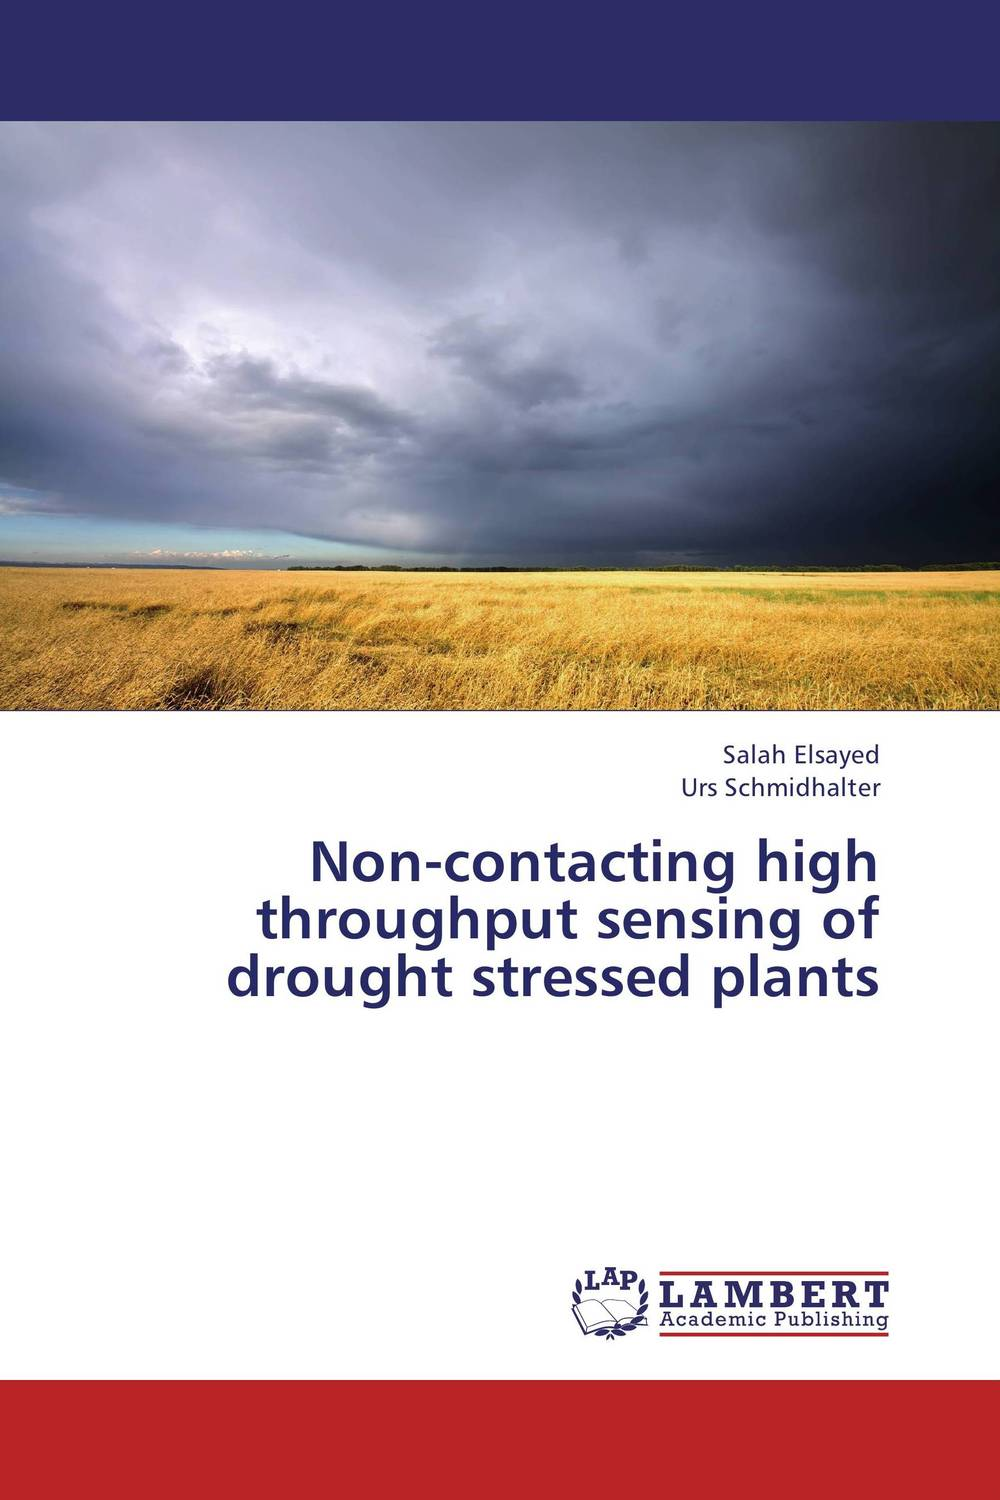 Non-contacting high throughput sensing of drought stressed plants